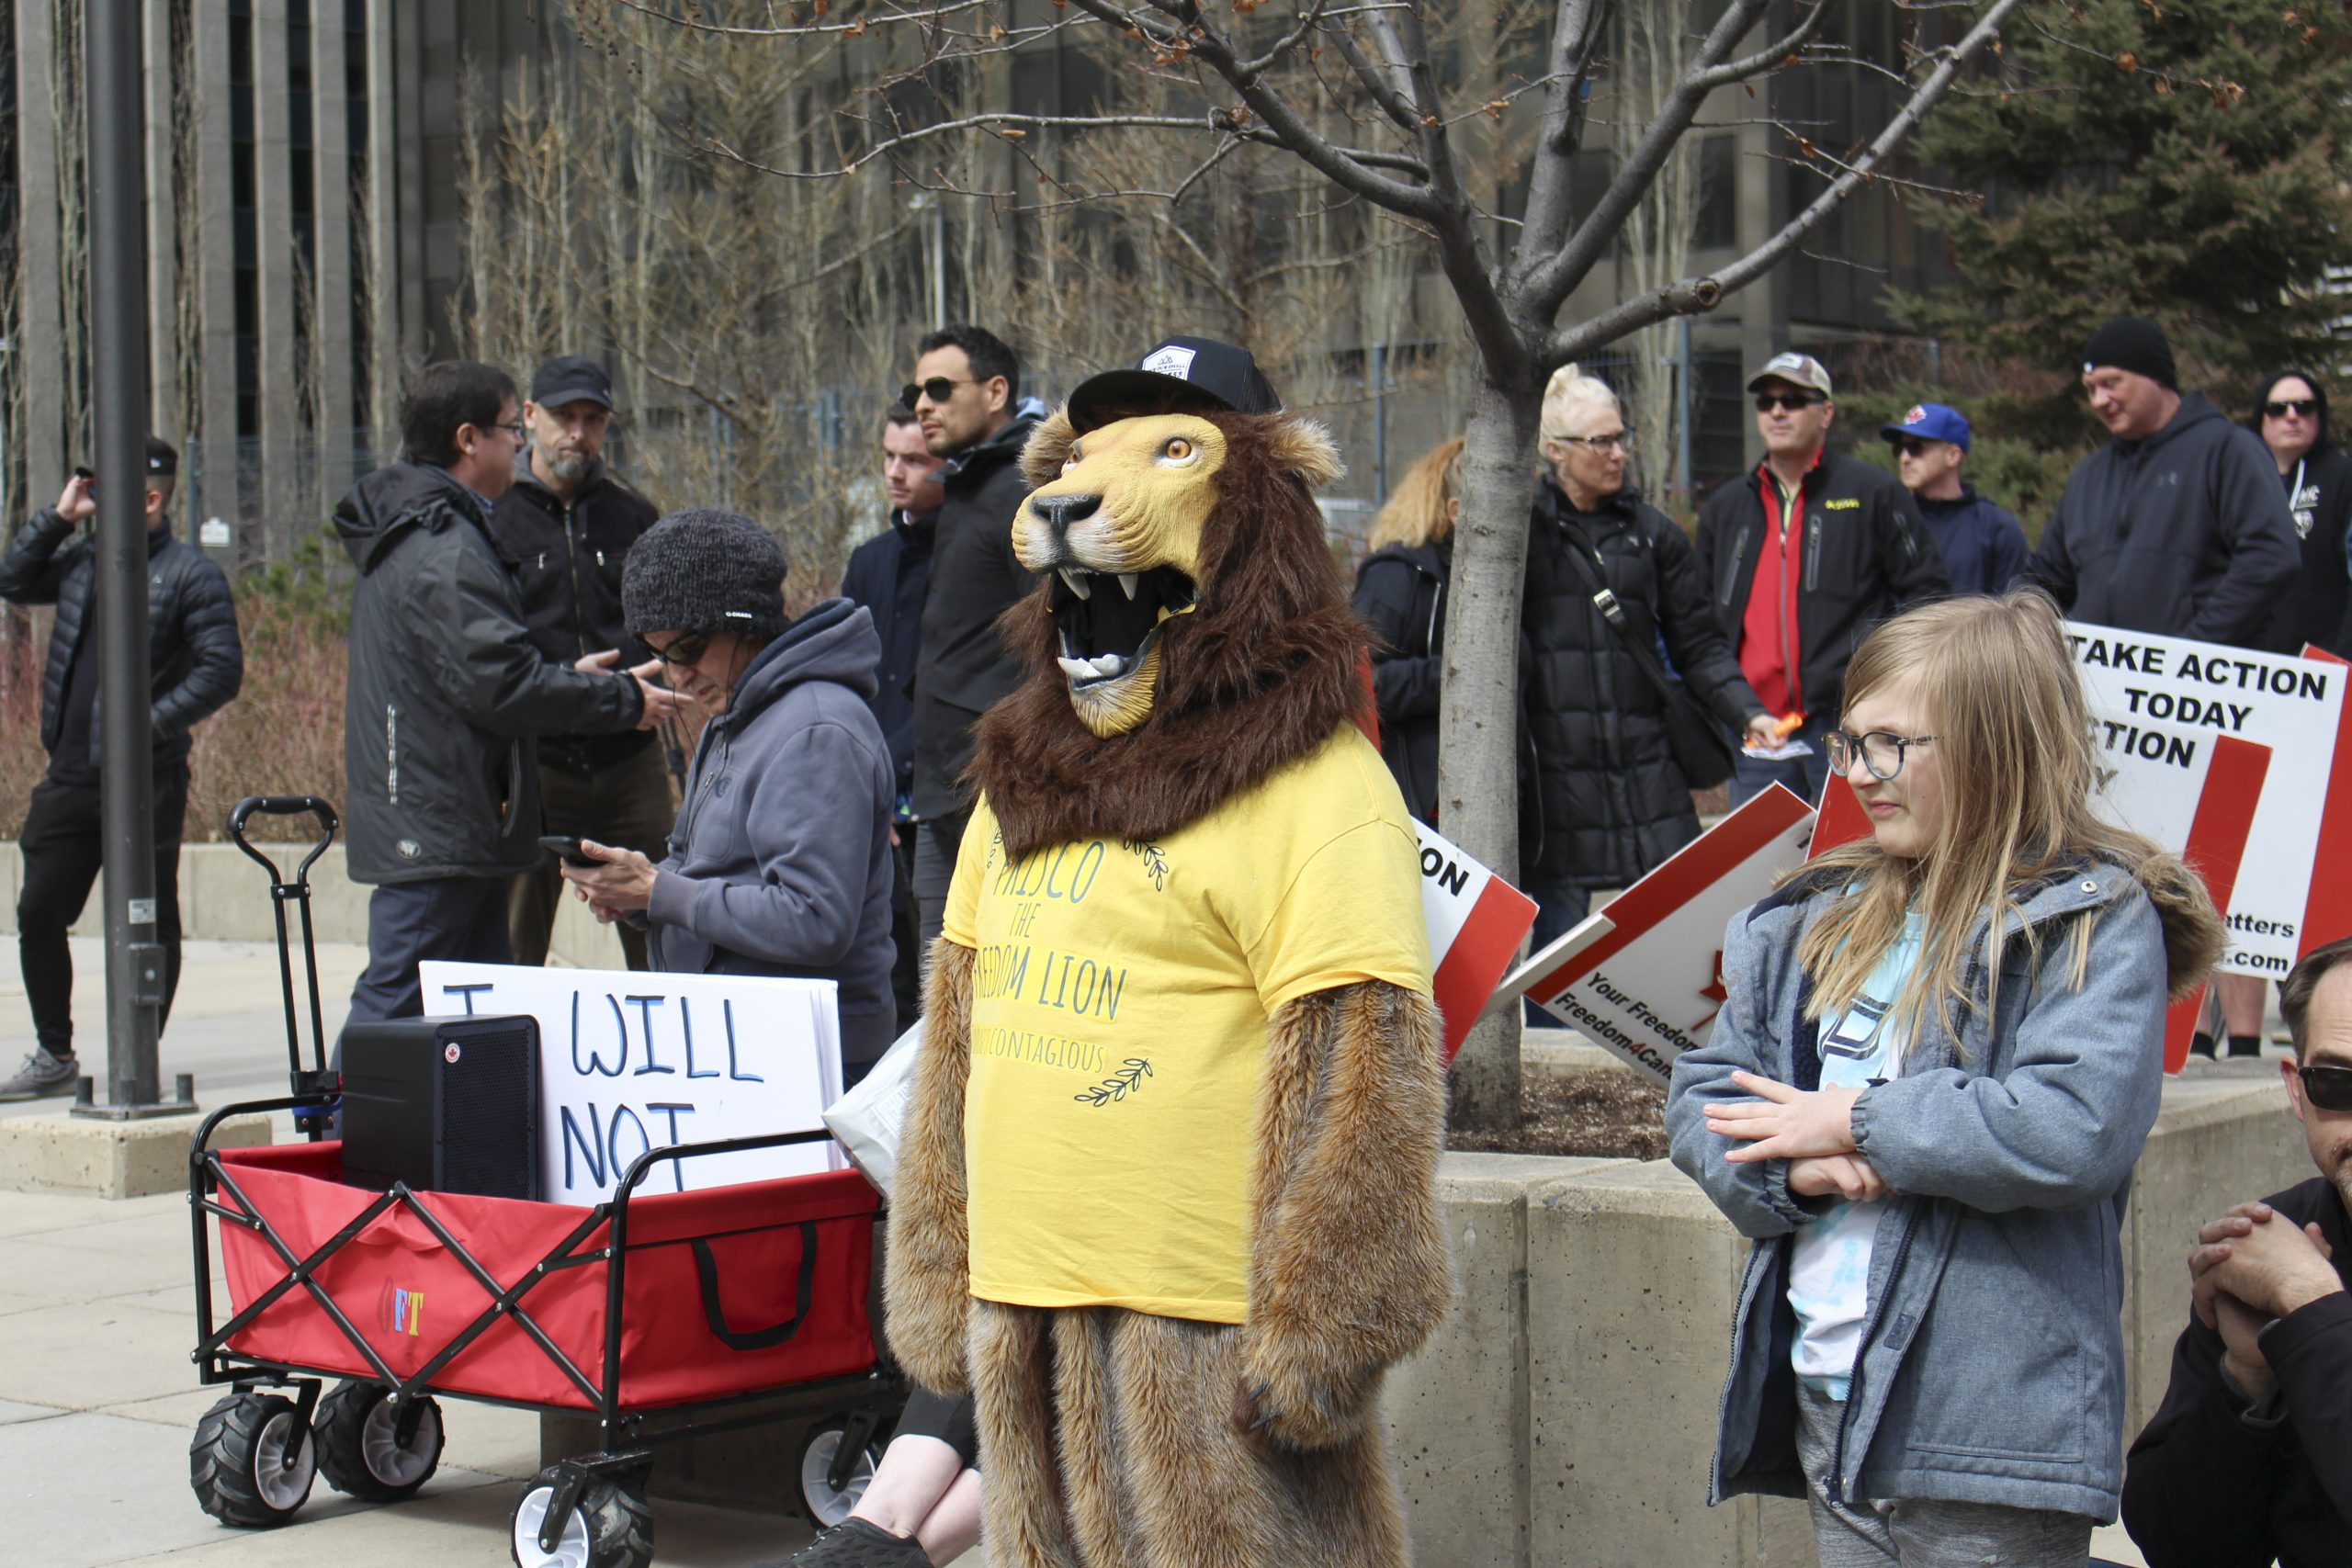 """Frisco """"The Freedom Lion"""" stands and listens to the speakers as they talk at the """"Save Small Business"""" rally in Courthouse Park in downtown Calgary on April 11, 2021. Frisco, the mascot for Calgary Freedom Central, stood with a couple hundred people during the rally that was hosted by Calgary Freedom Central. The rally was for supporting small businesses that are facing hardships as a result of COVID-19 and the provincial lockdown, but also to express disdain for mask usage, vaccines, the COVID-19 testing method, and compliance with the government and the enforcement of said closures. (Photo by Alejandro Melgar/SAIT)"""